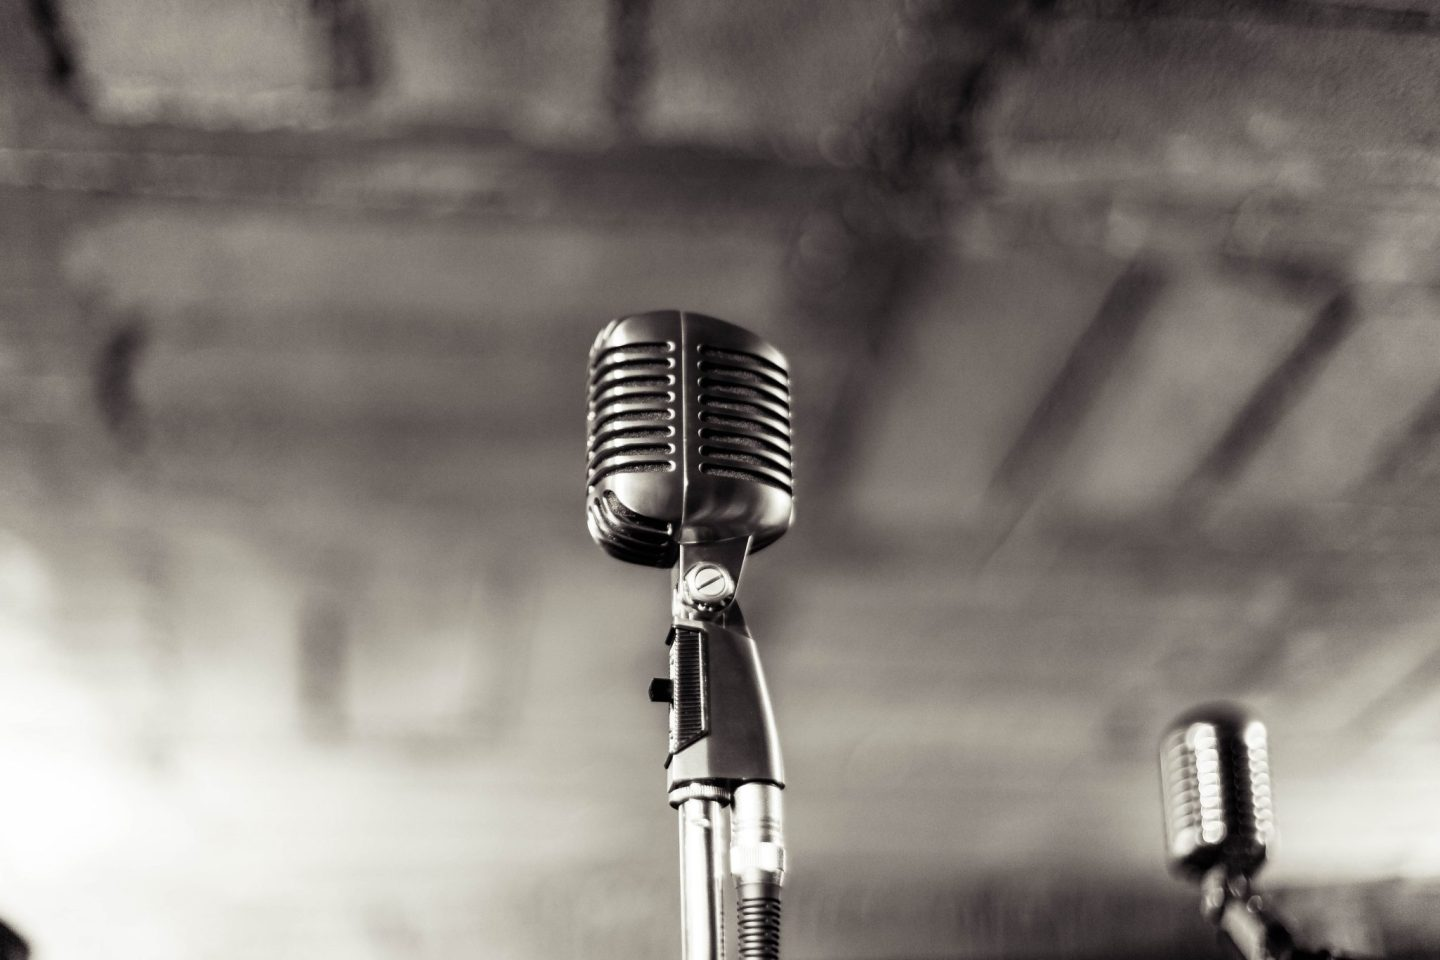 black and white image of vintage microphone